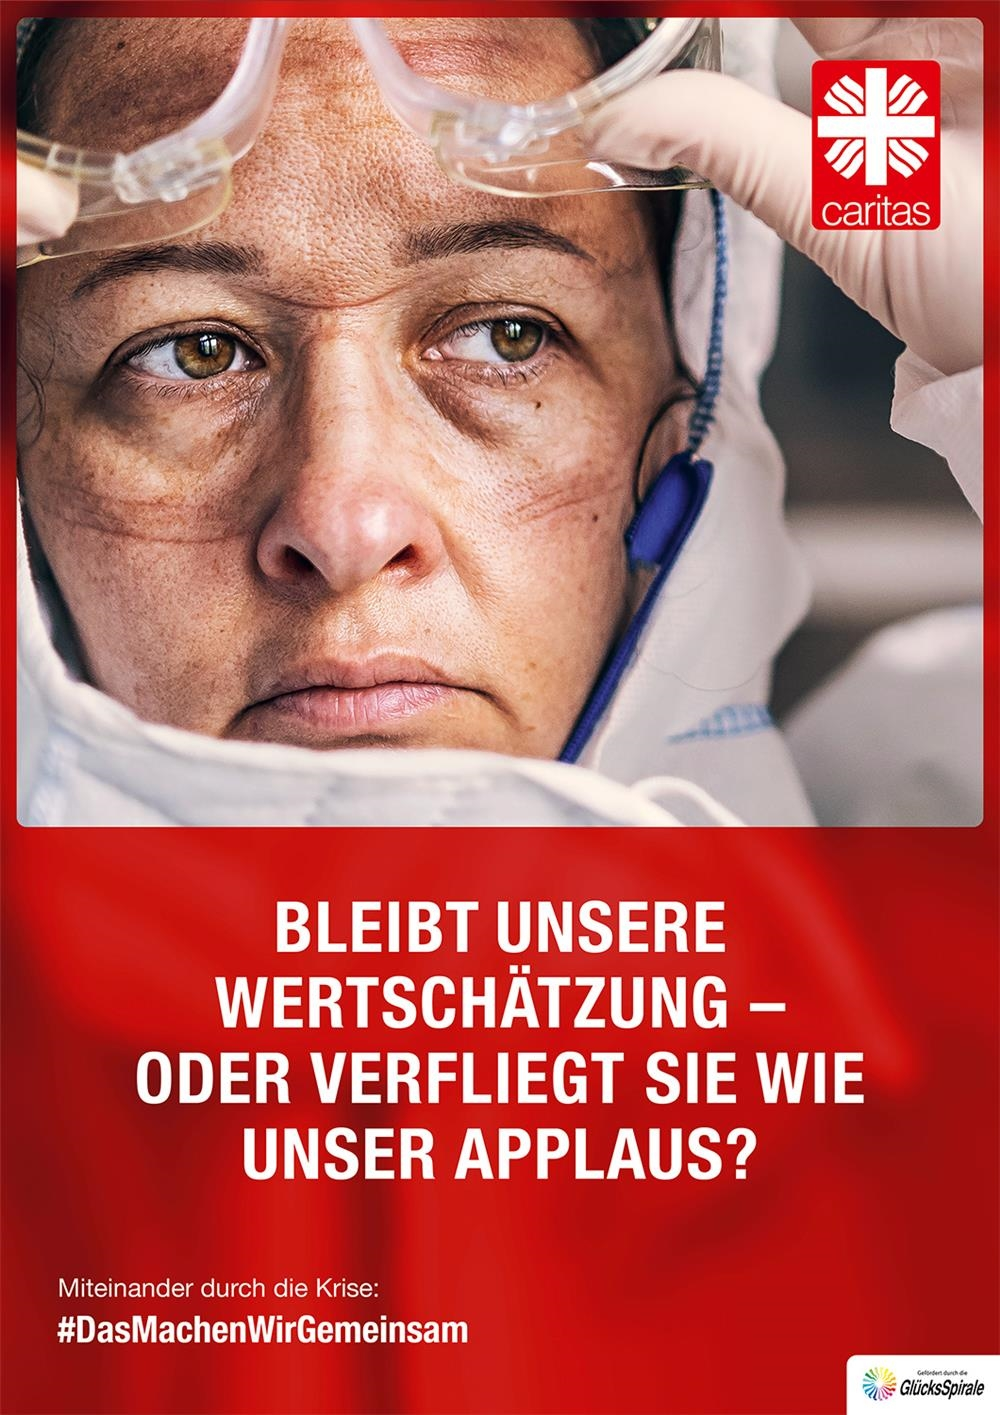 Plakat Applaus HF (Deutscher Caritasverband e. V.)